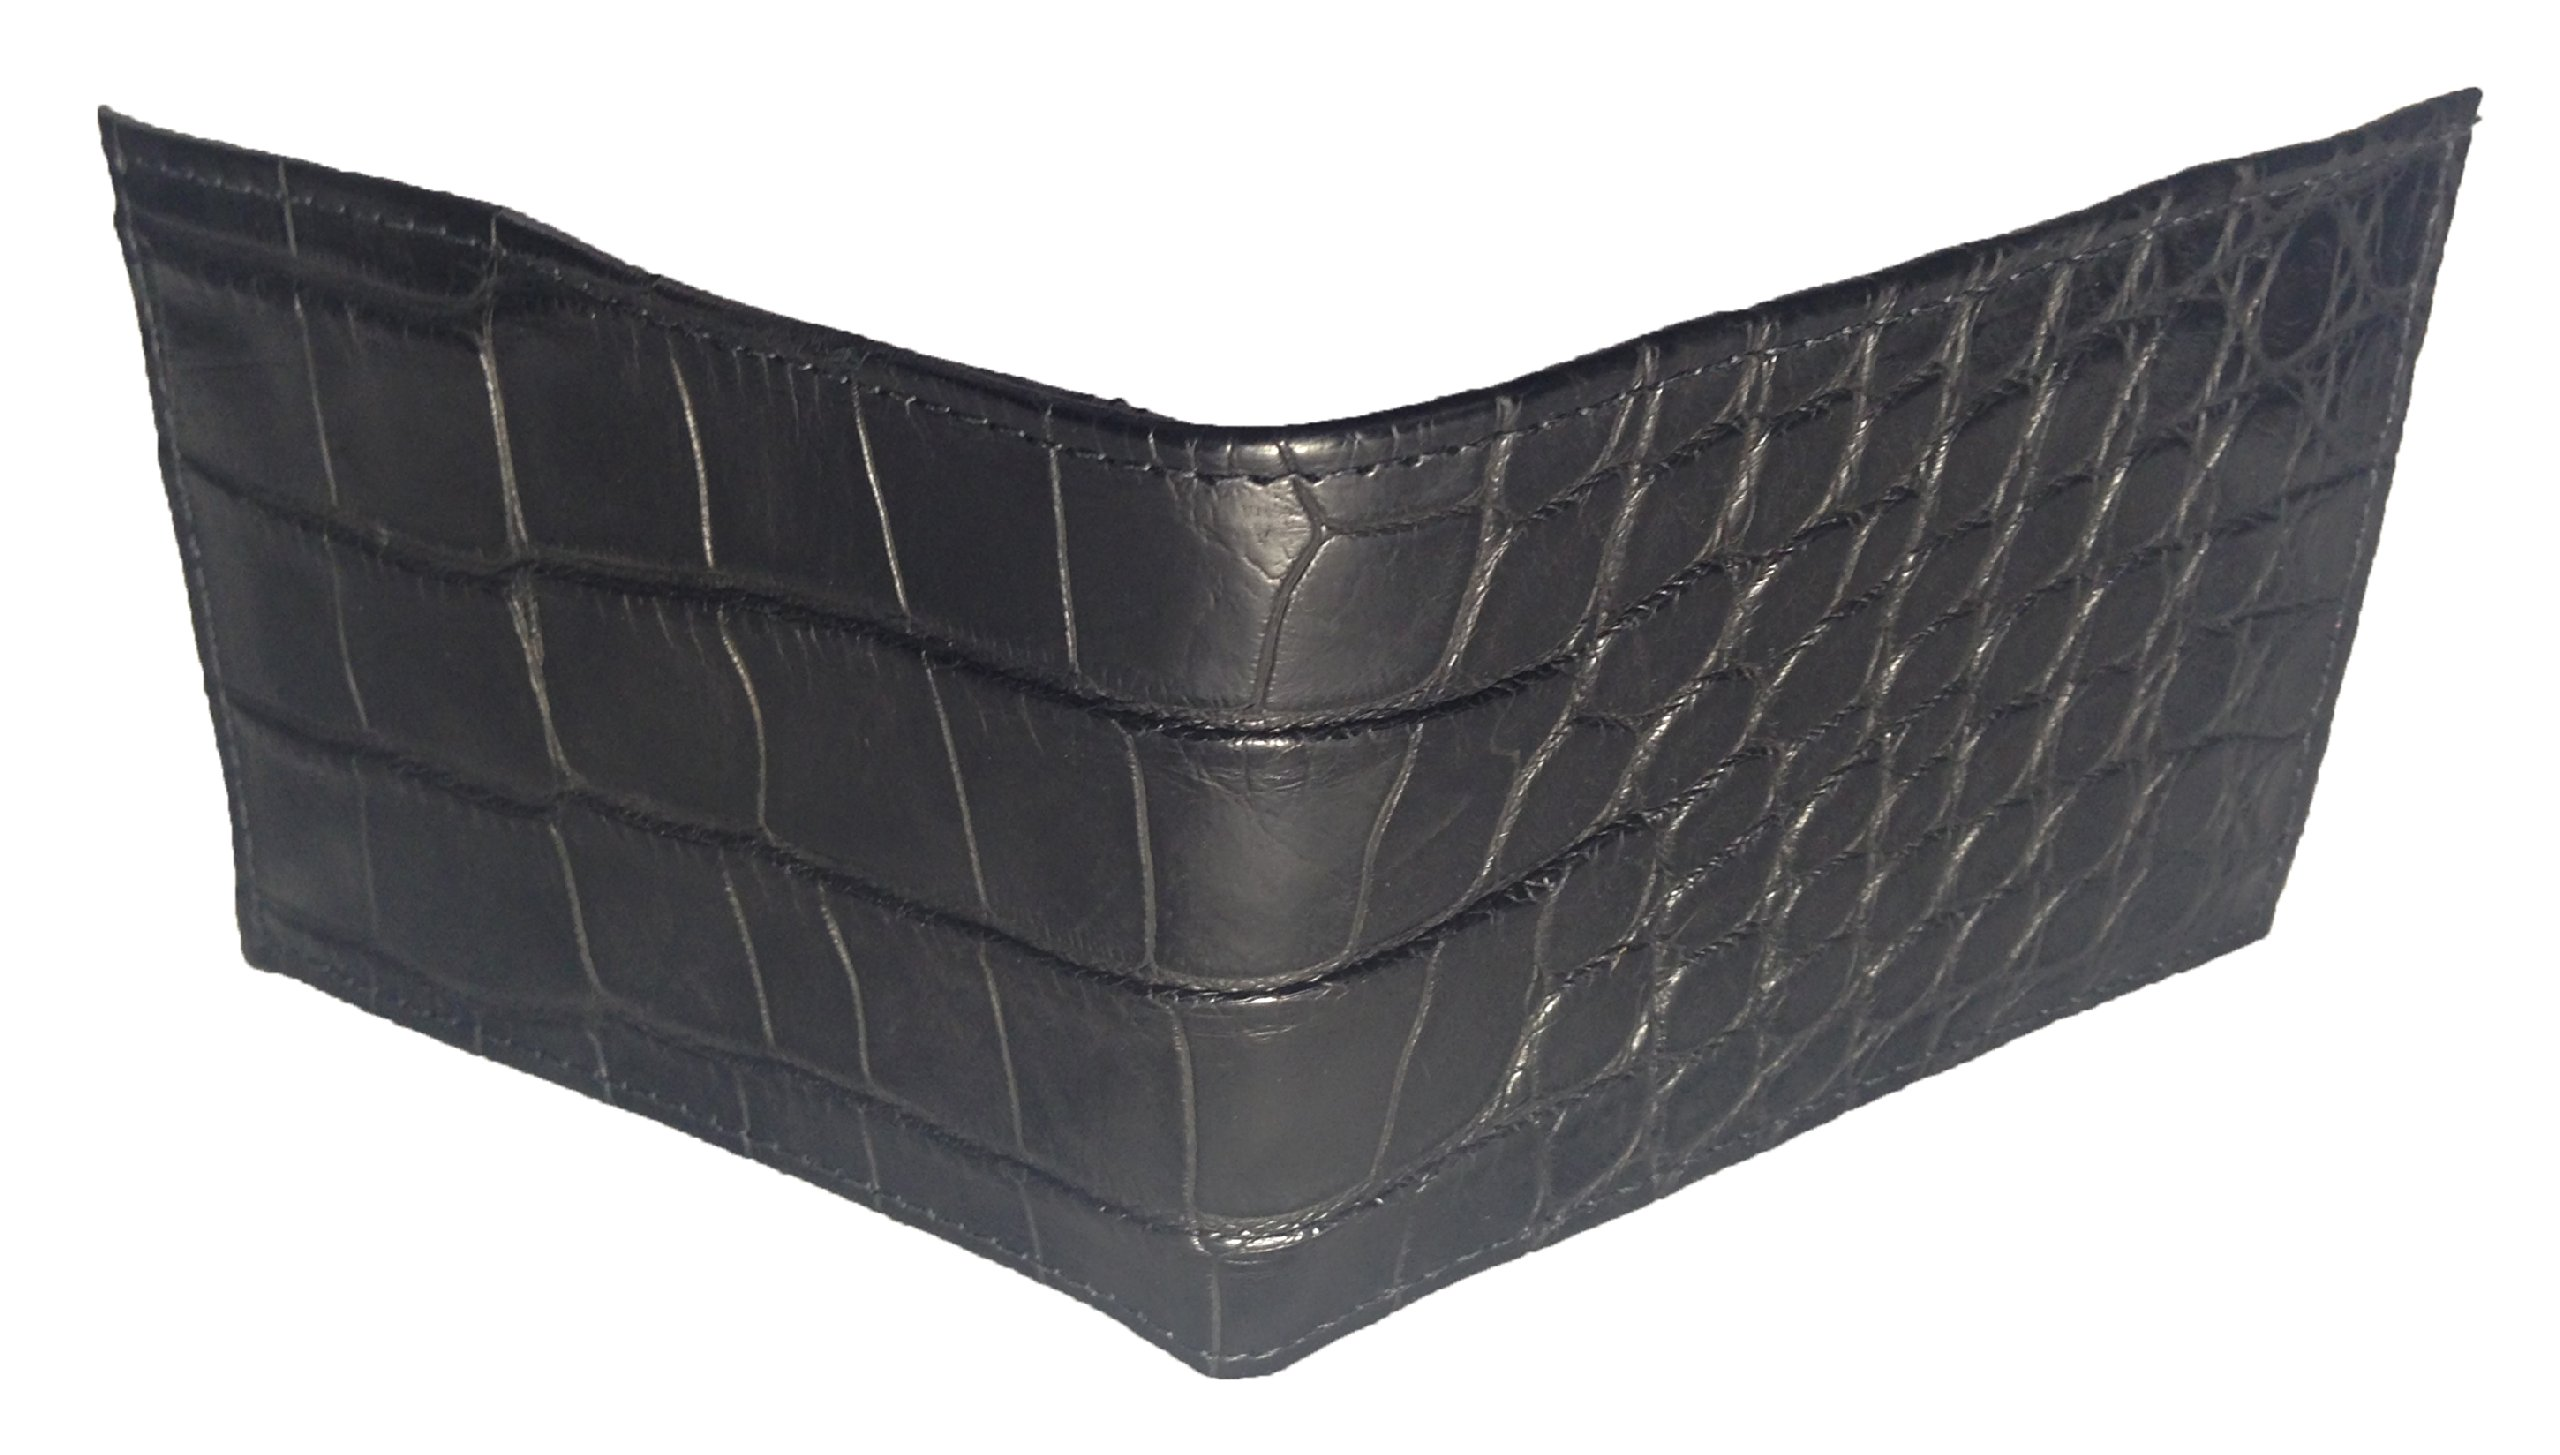 Sultan Genuine Alligator Men's Bifold Wallet - Black Safari (Semi-Gloss) - One Size